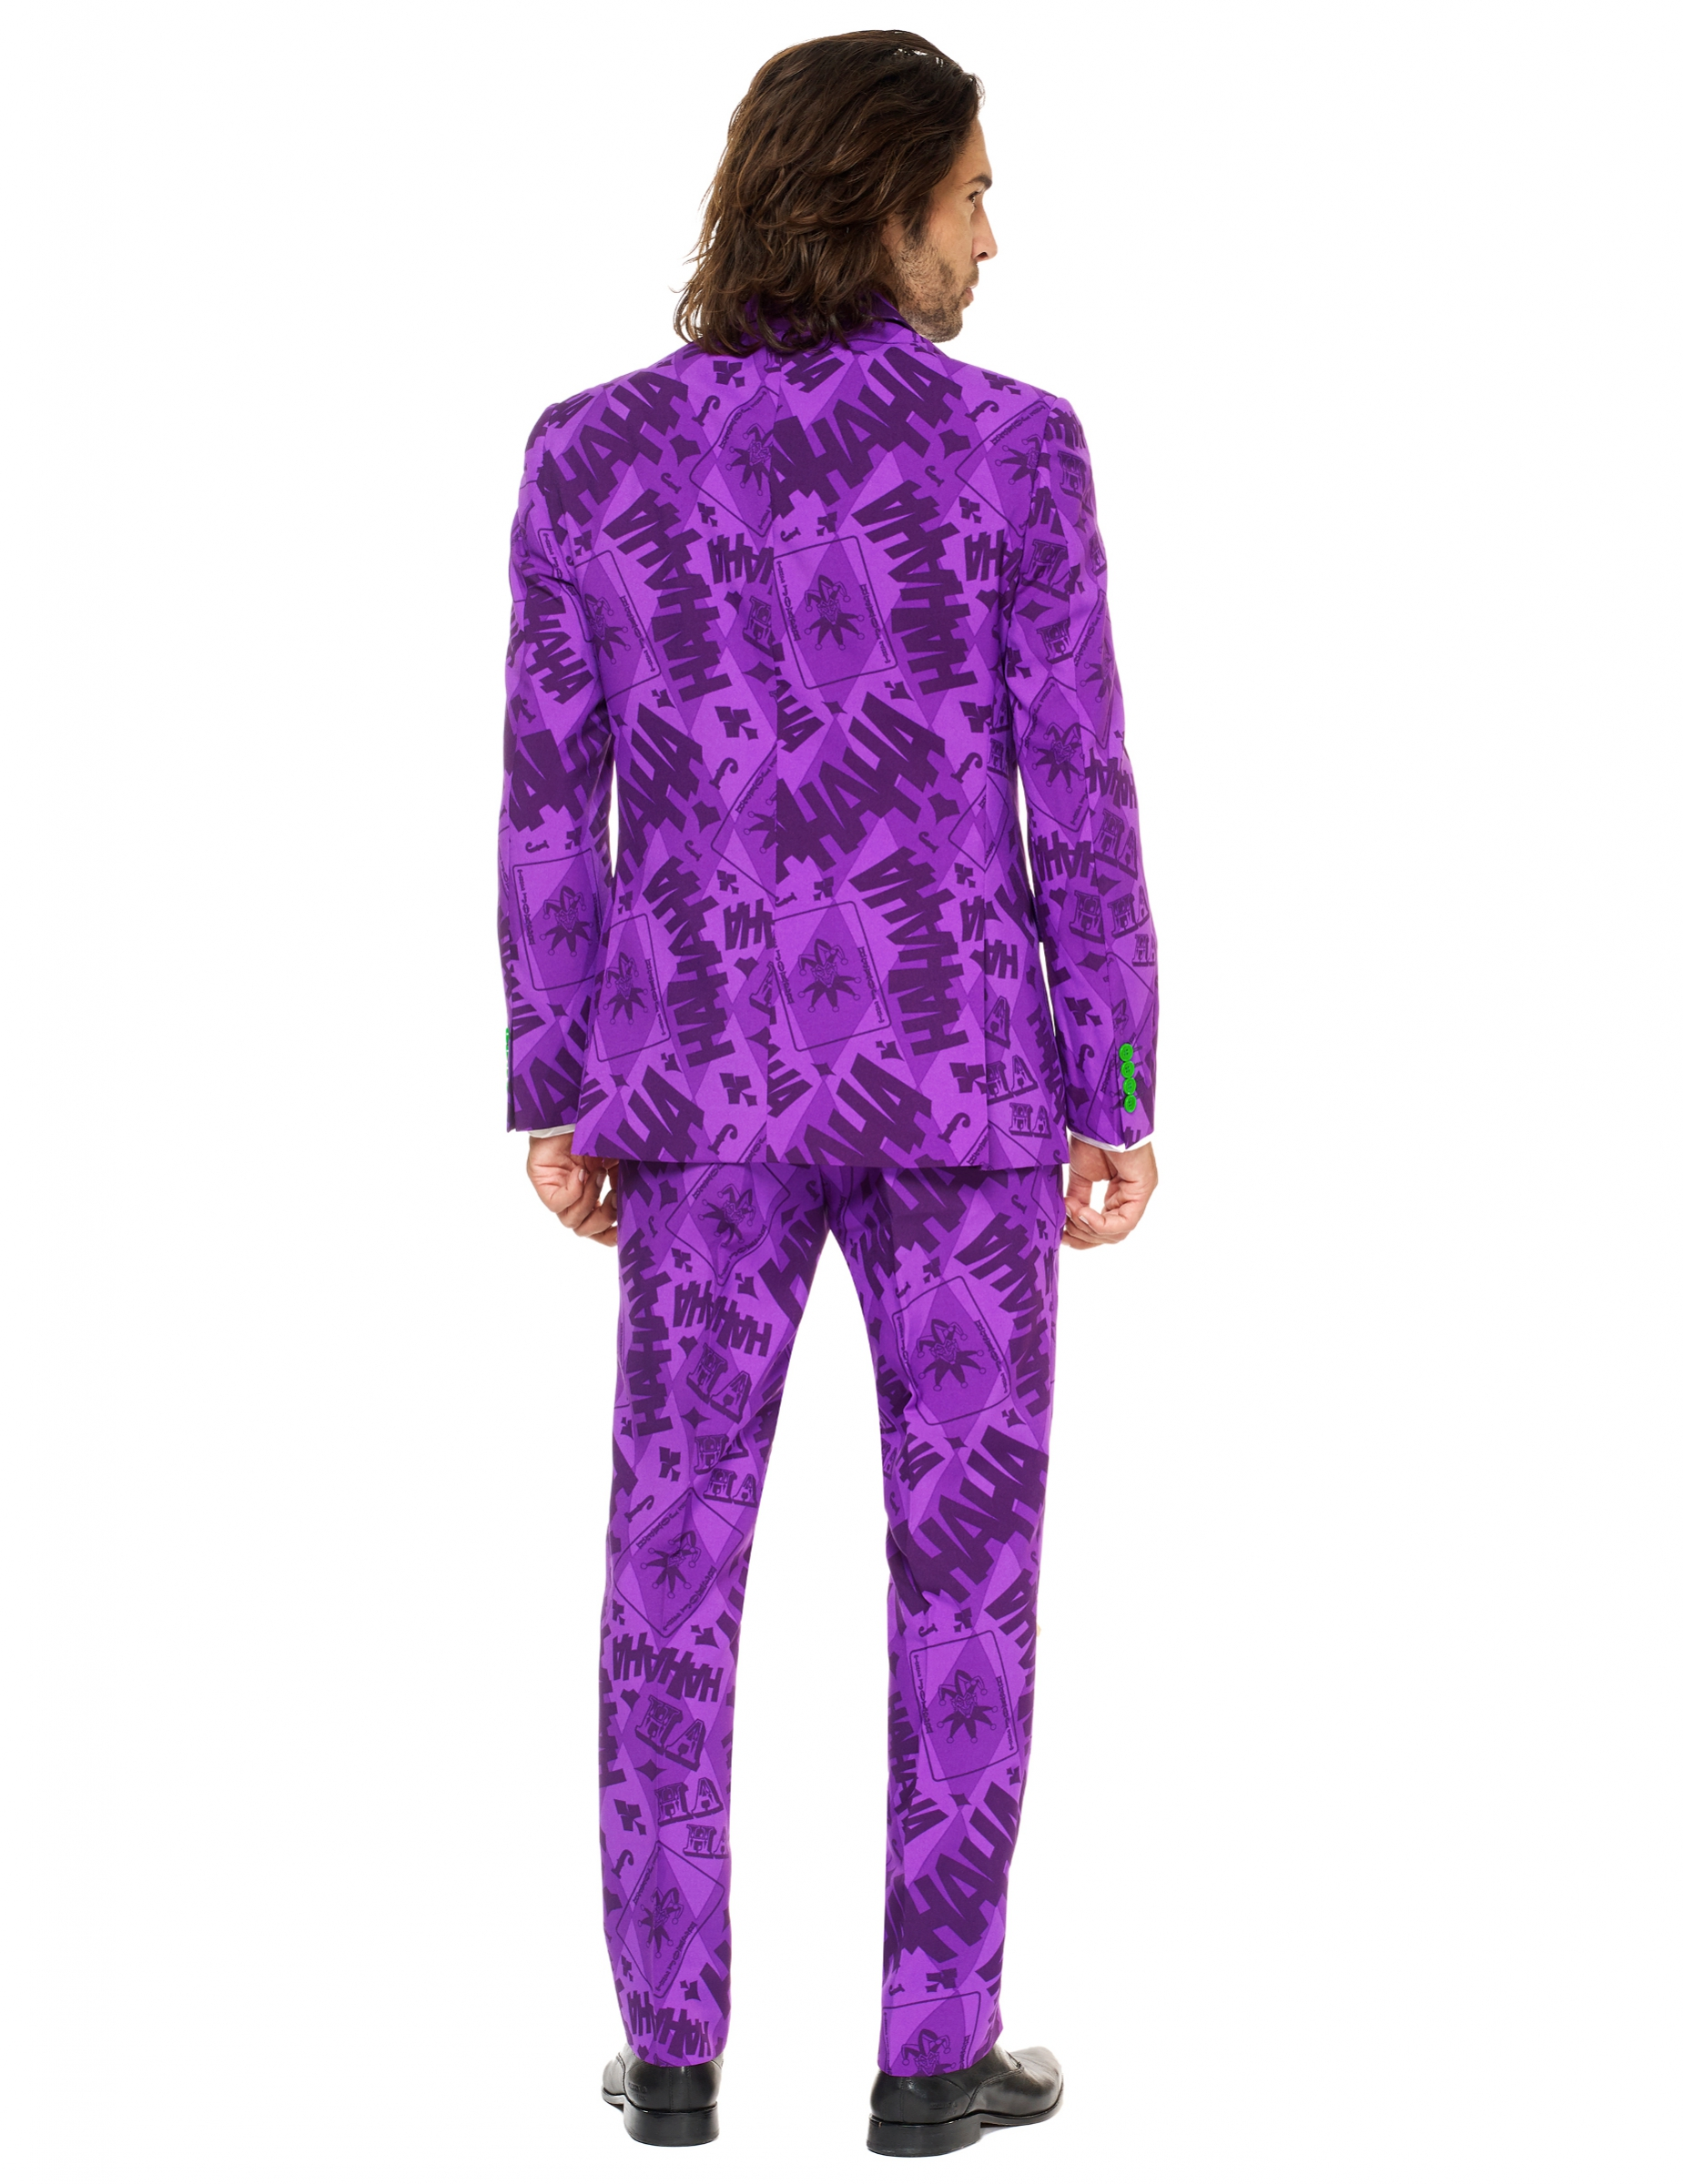 costume mr joker homme opposuits achat de d guisements adultes sur vegaoopro grossiste en. Black Bedroom Furniture Sets. Home Design Ideas